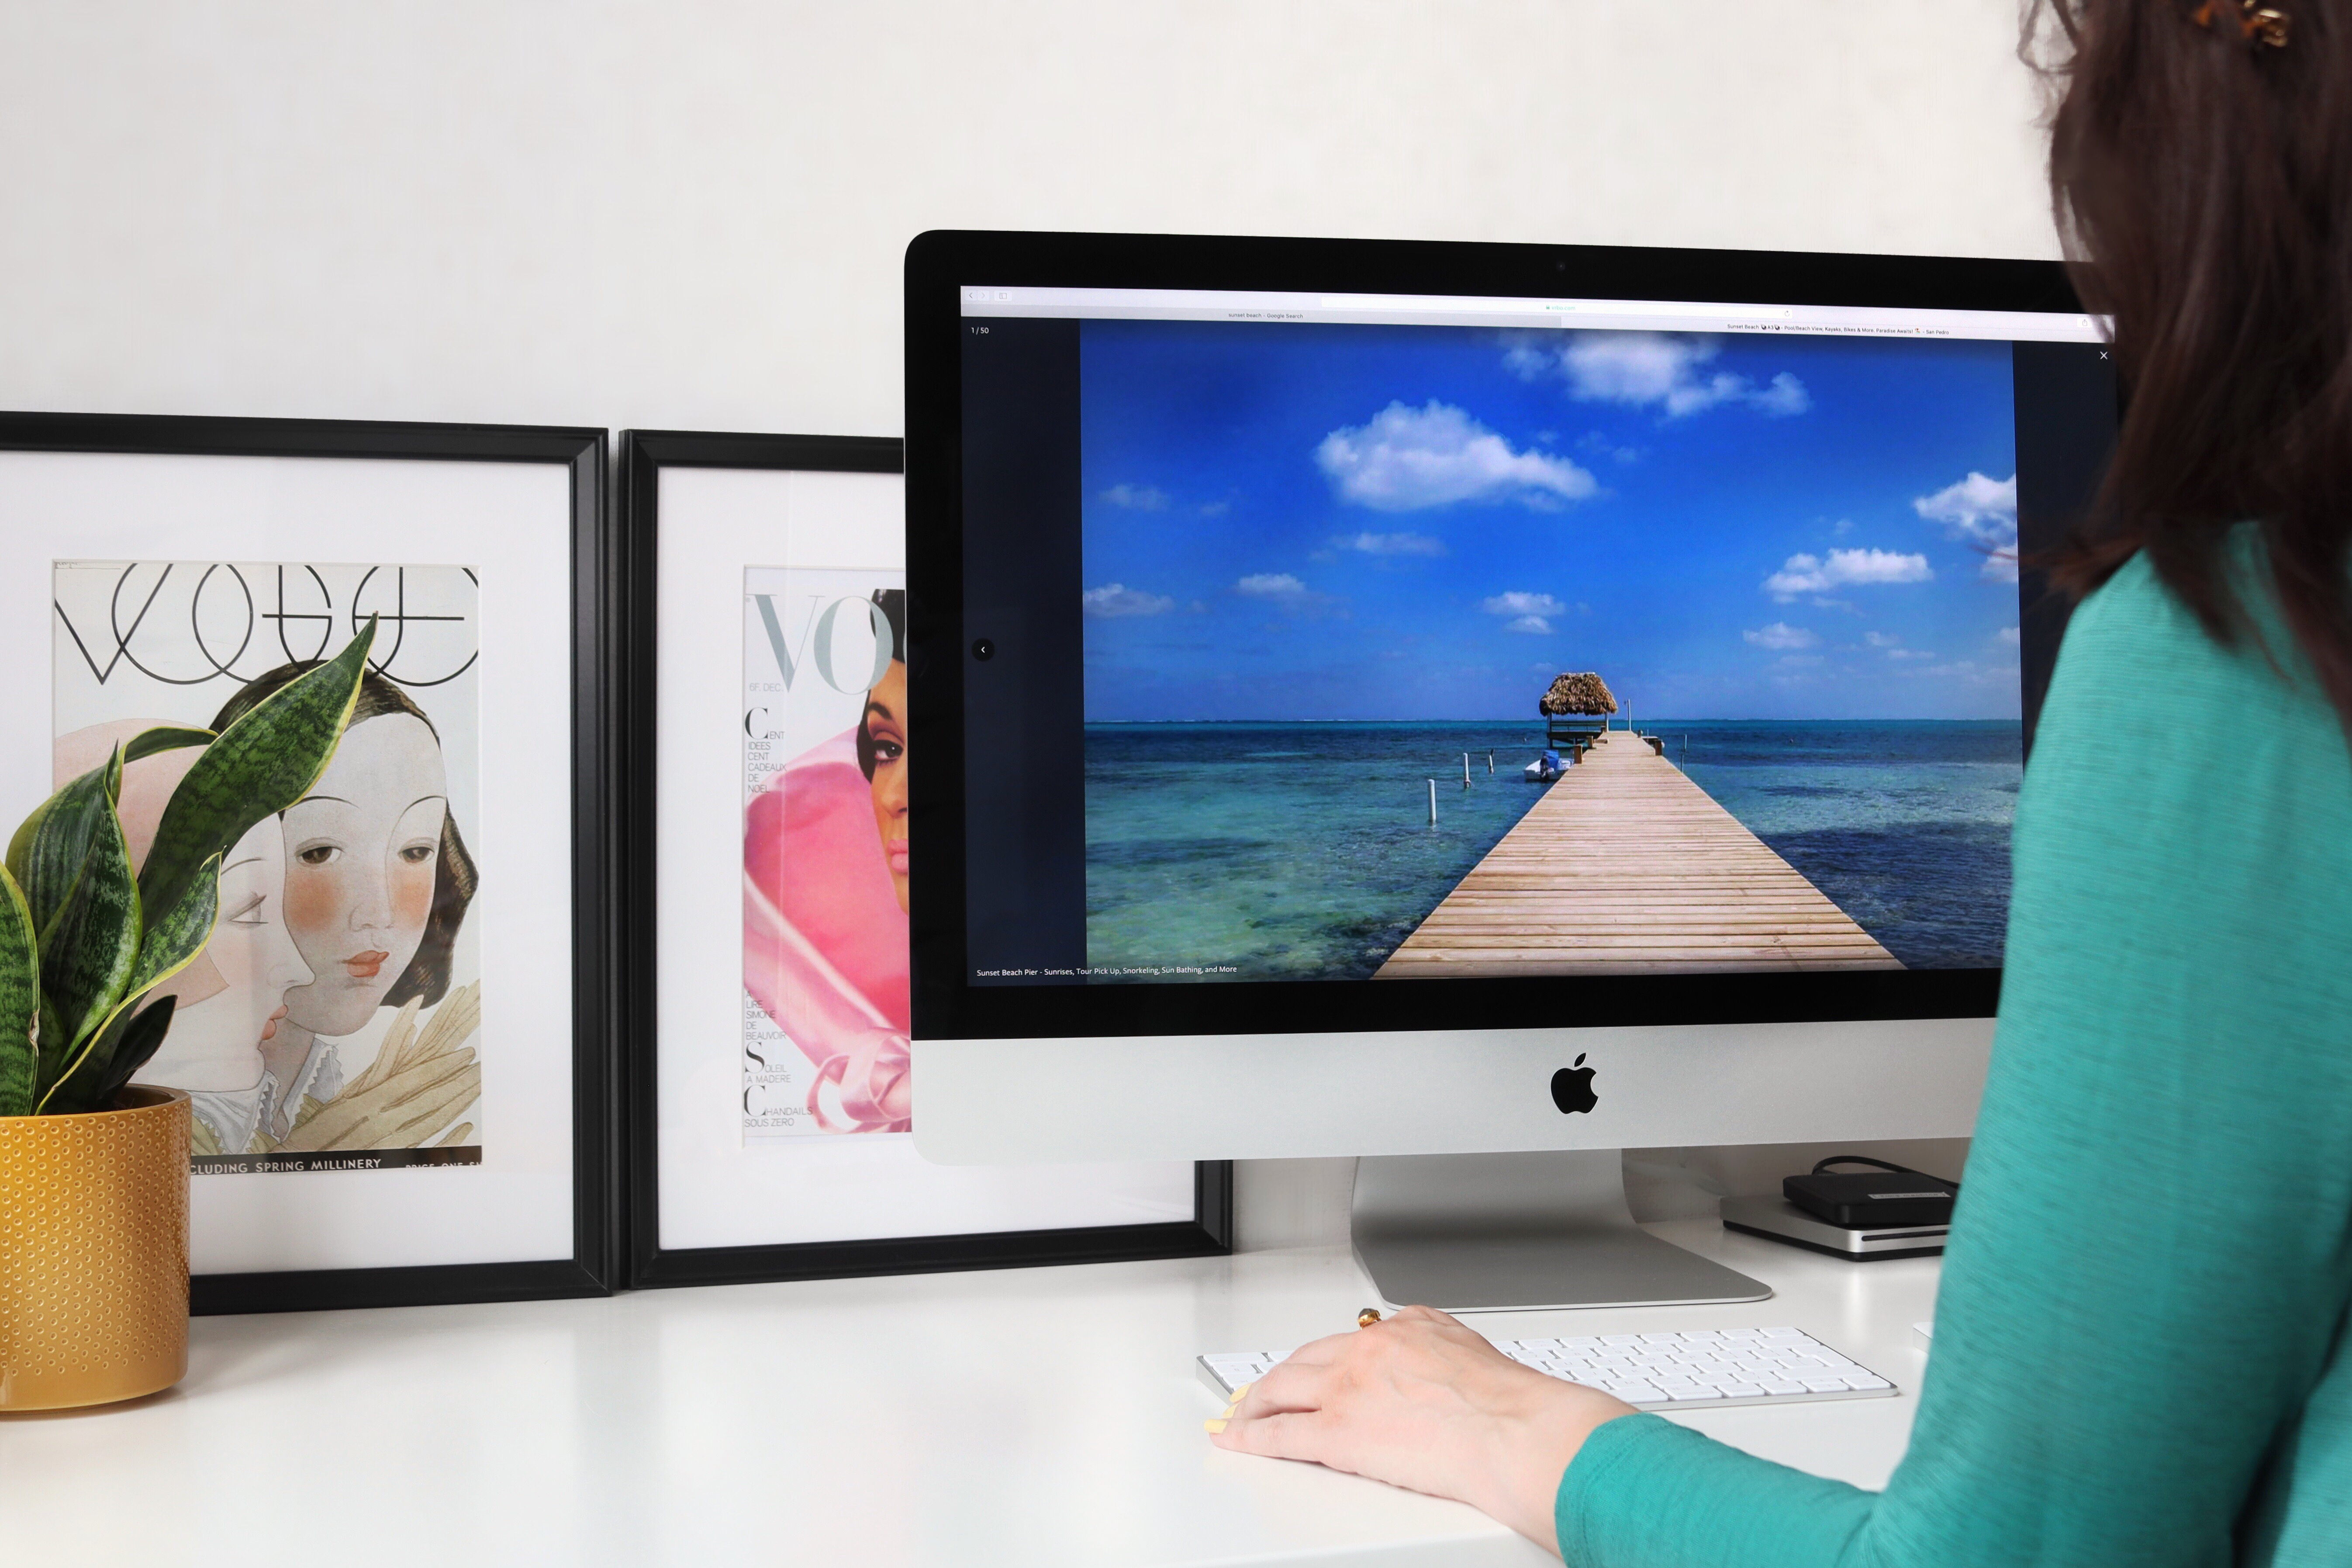 Travelling with chronic illness - tips for planning a holiday. Image of a Female sitting at at a desk in front of a computer looking at a holiday destination.